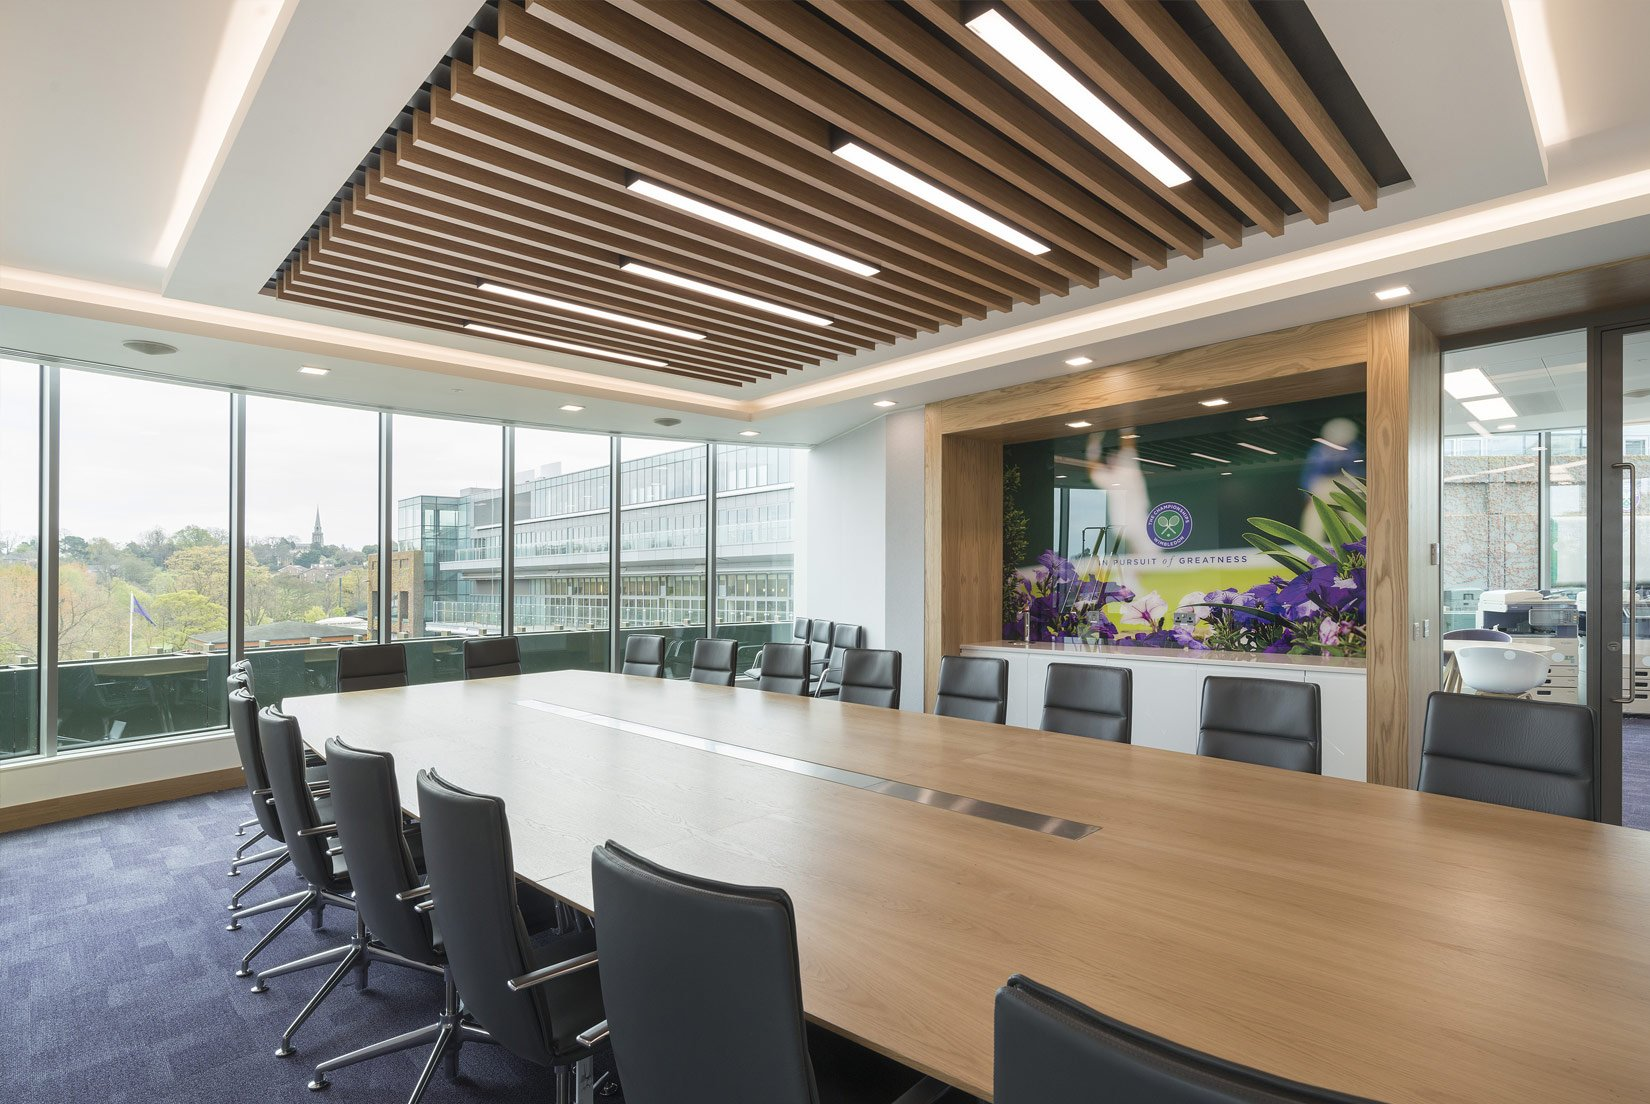 The Museum Building, AELTC, Wimbledon, meeting room : Photograph by Tony MacLean, Image Works (London) Ltd